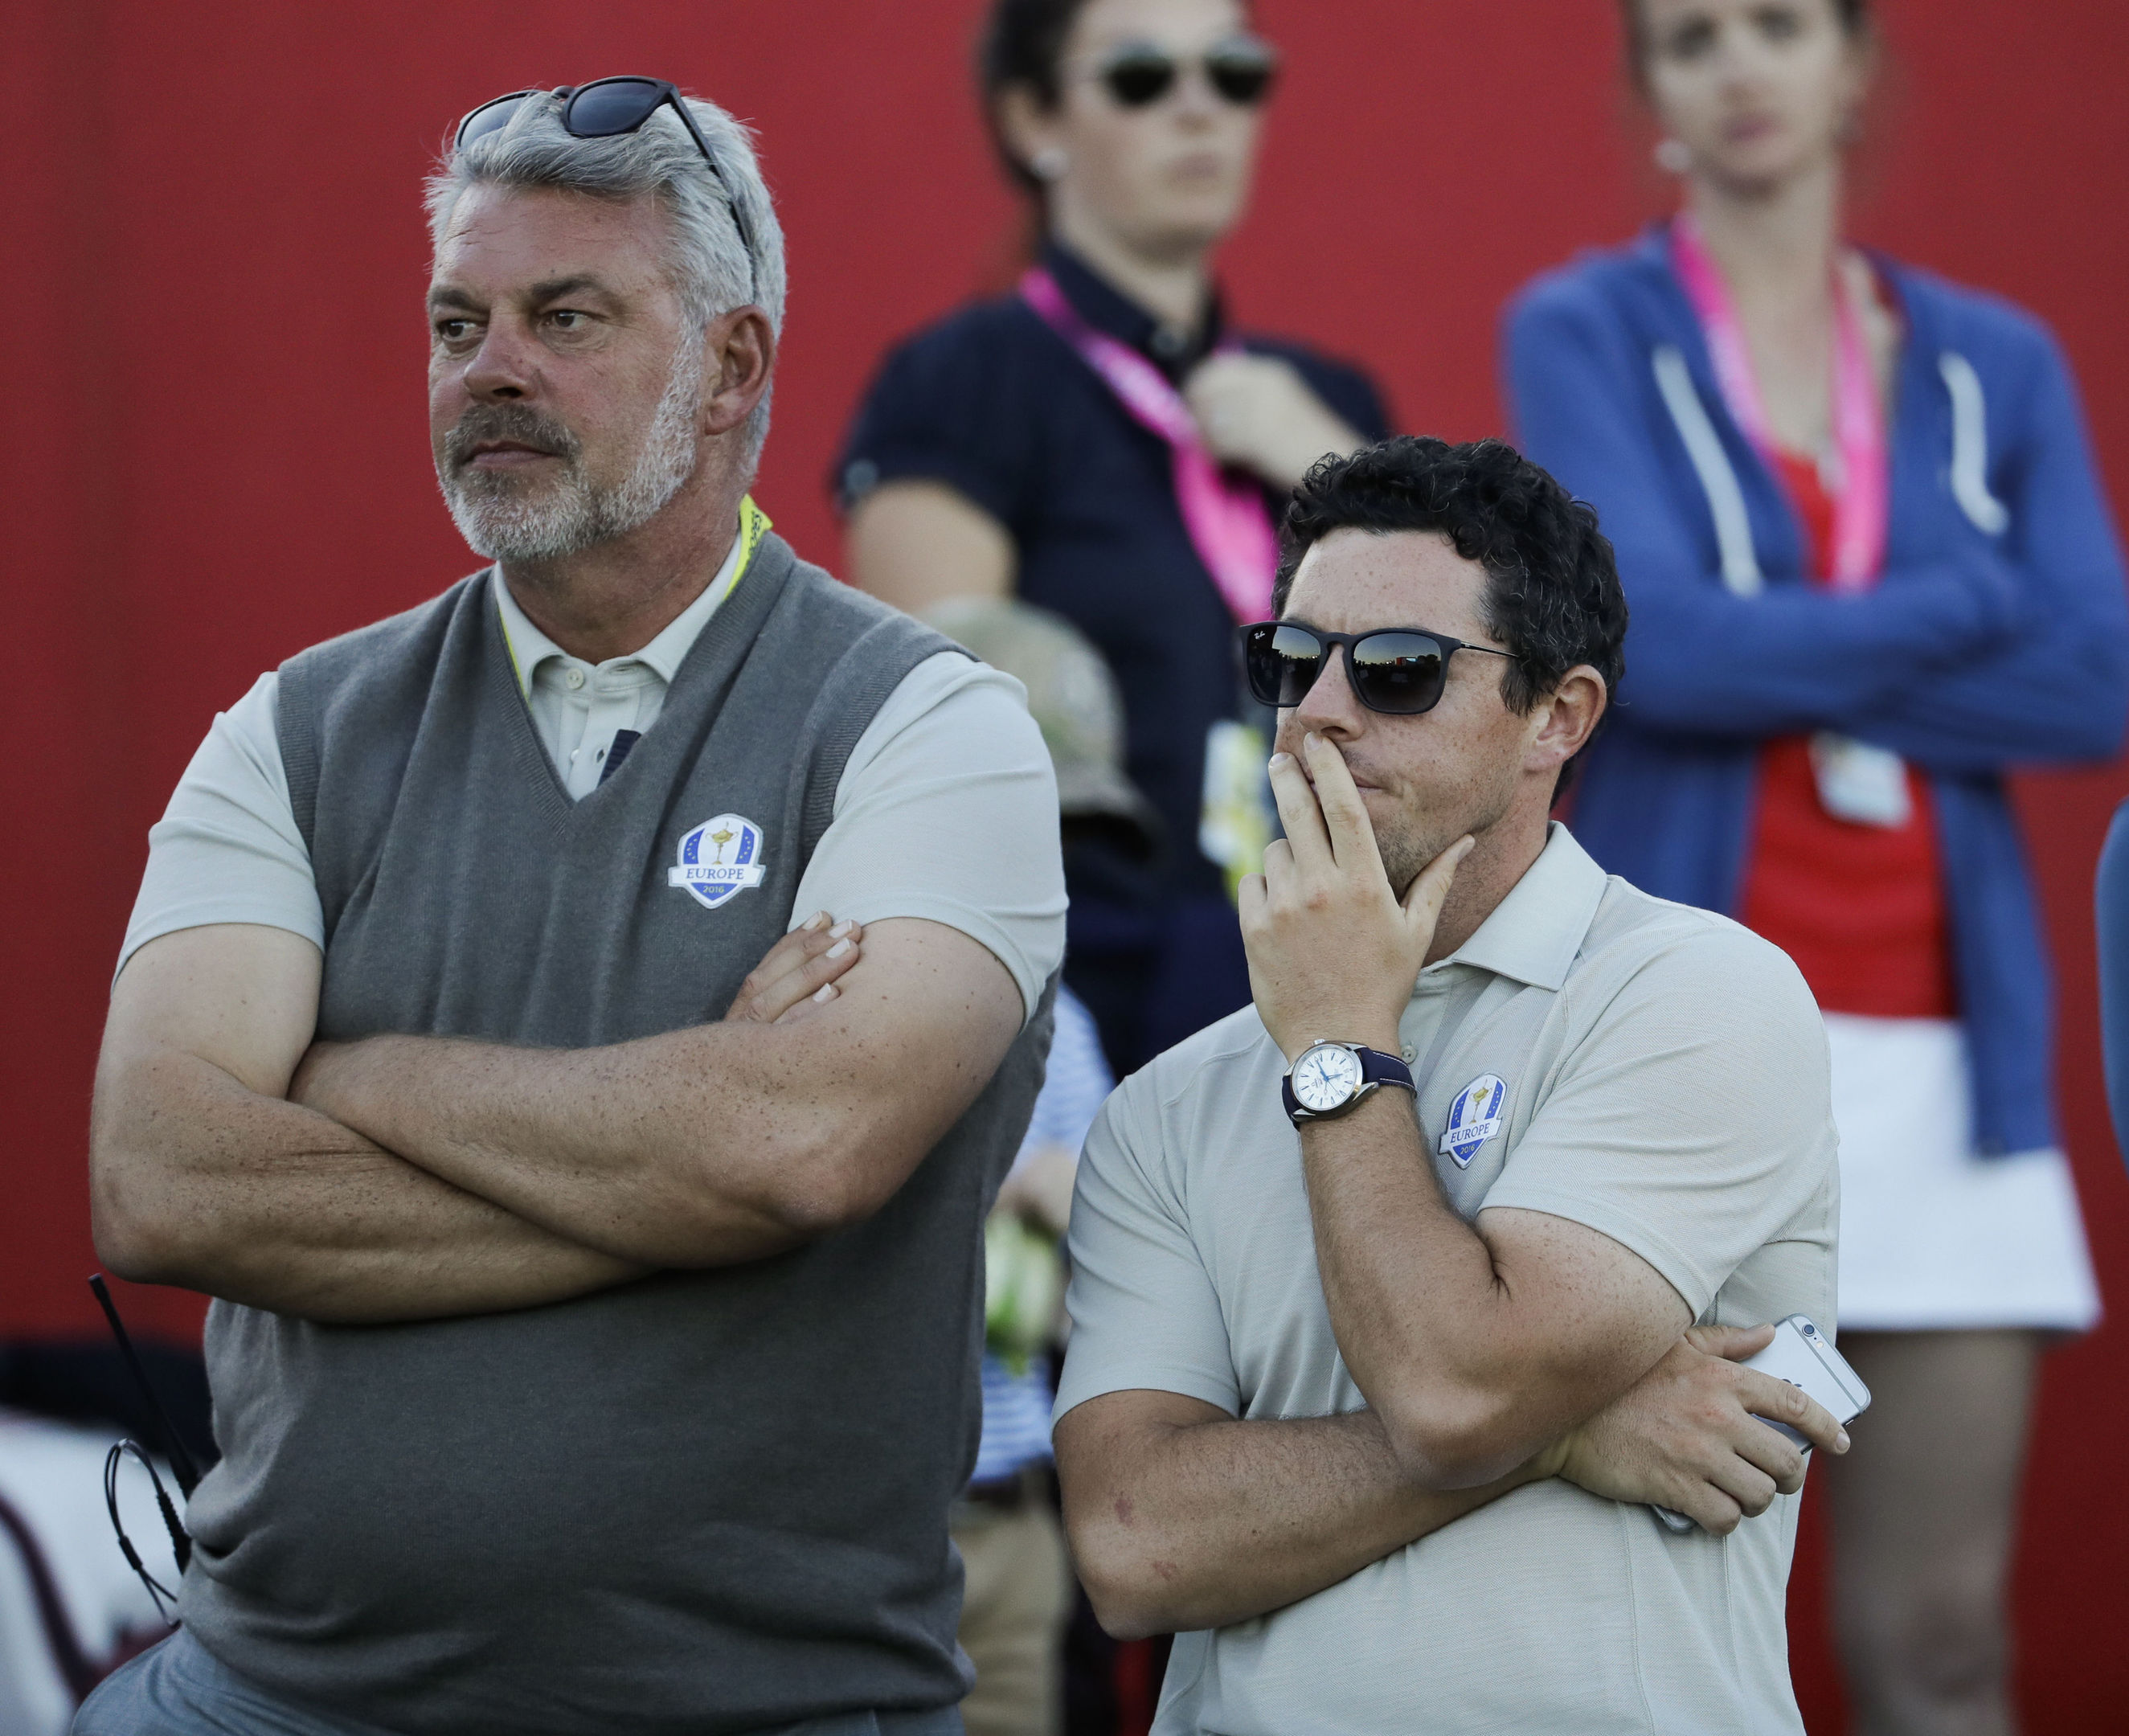 Europe captain Darren Clarke and Europe's Rory McIlroy watch as Europe's chances fade on Saturday night at Hazeltine.